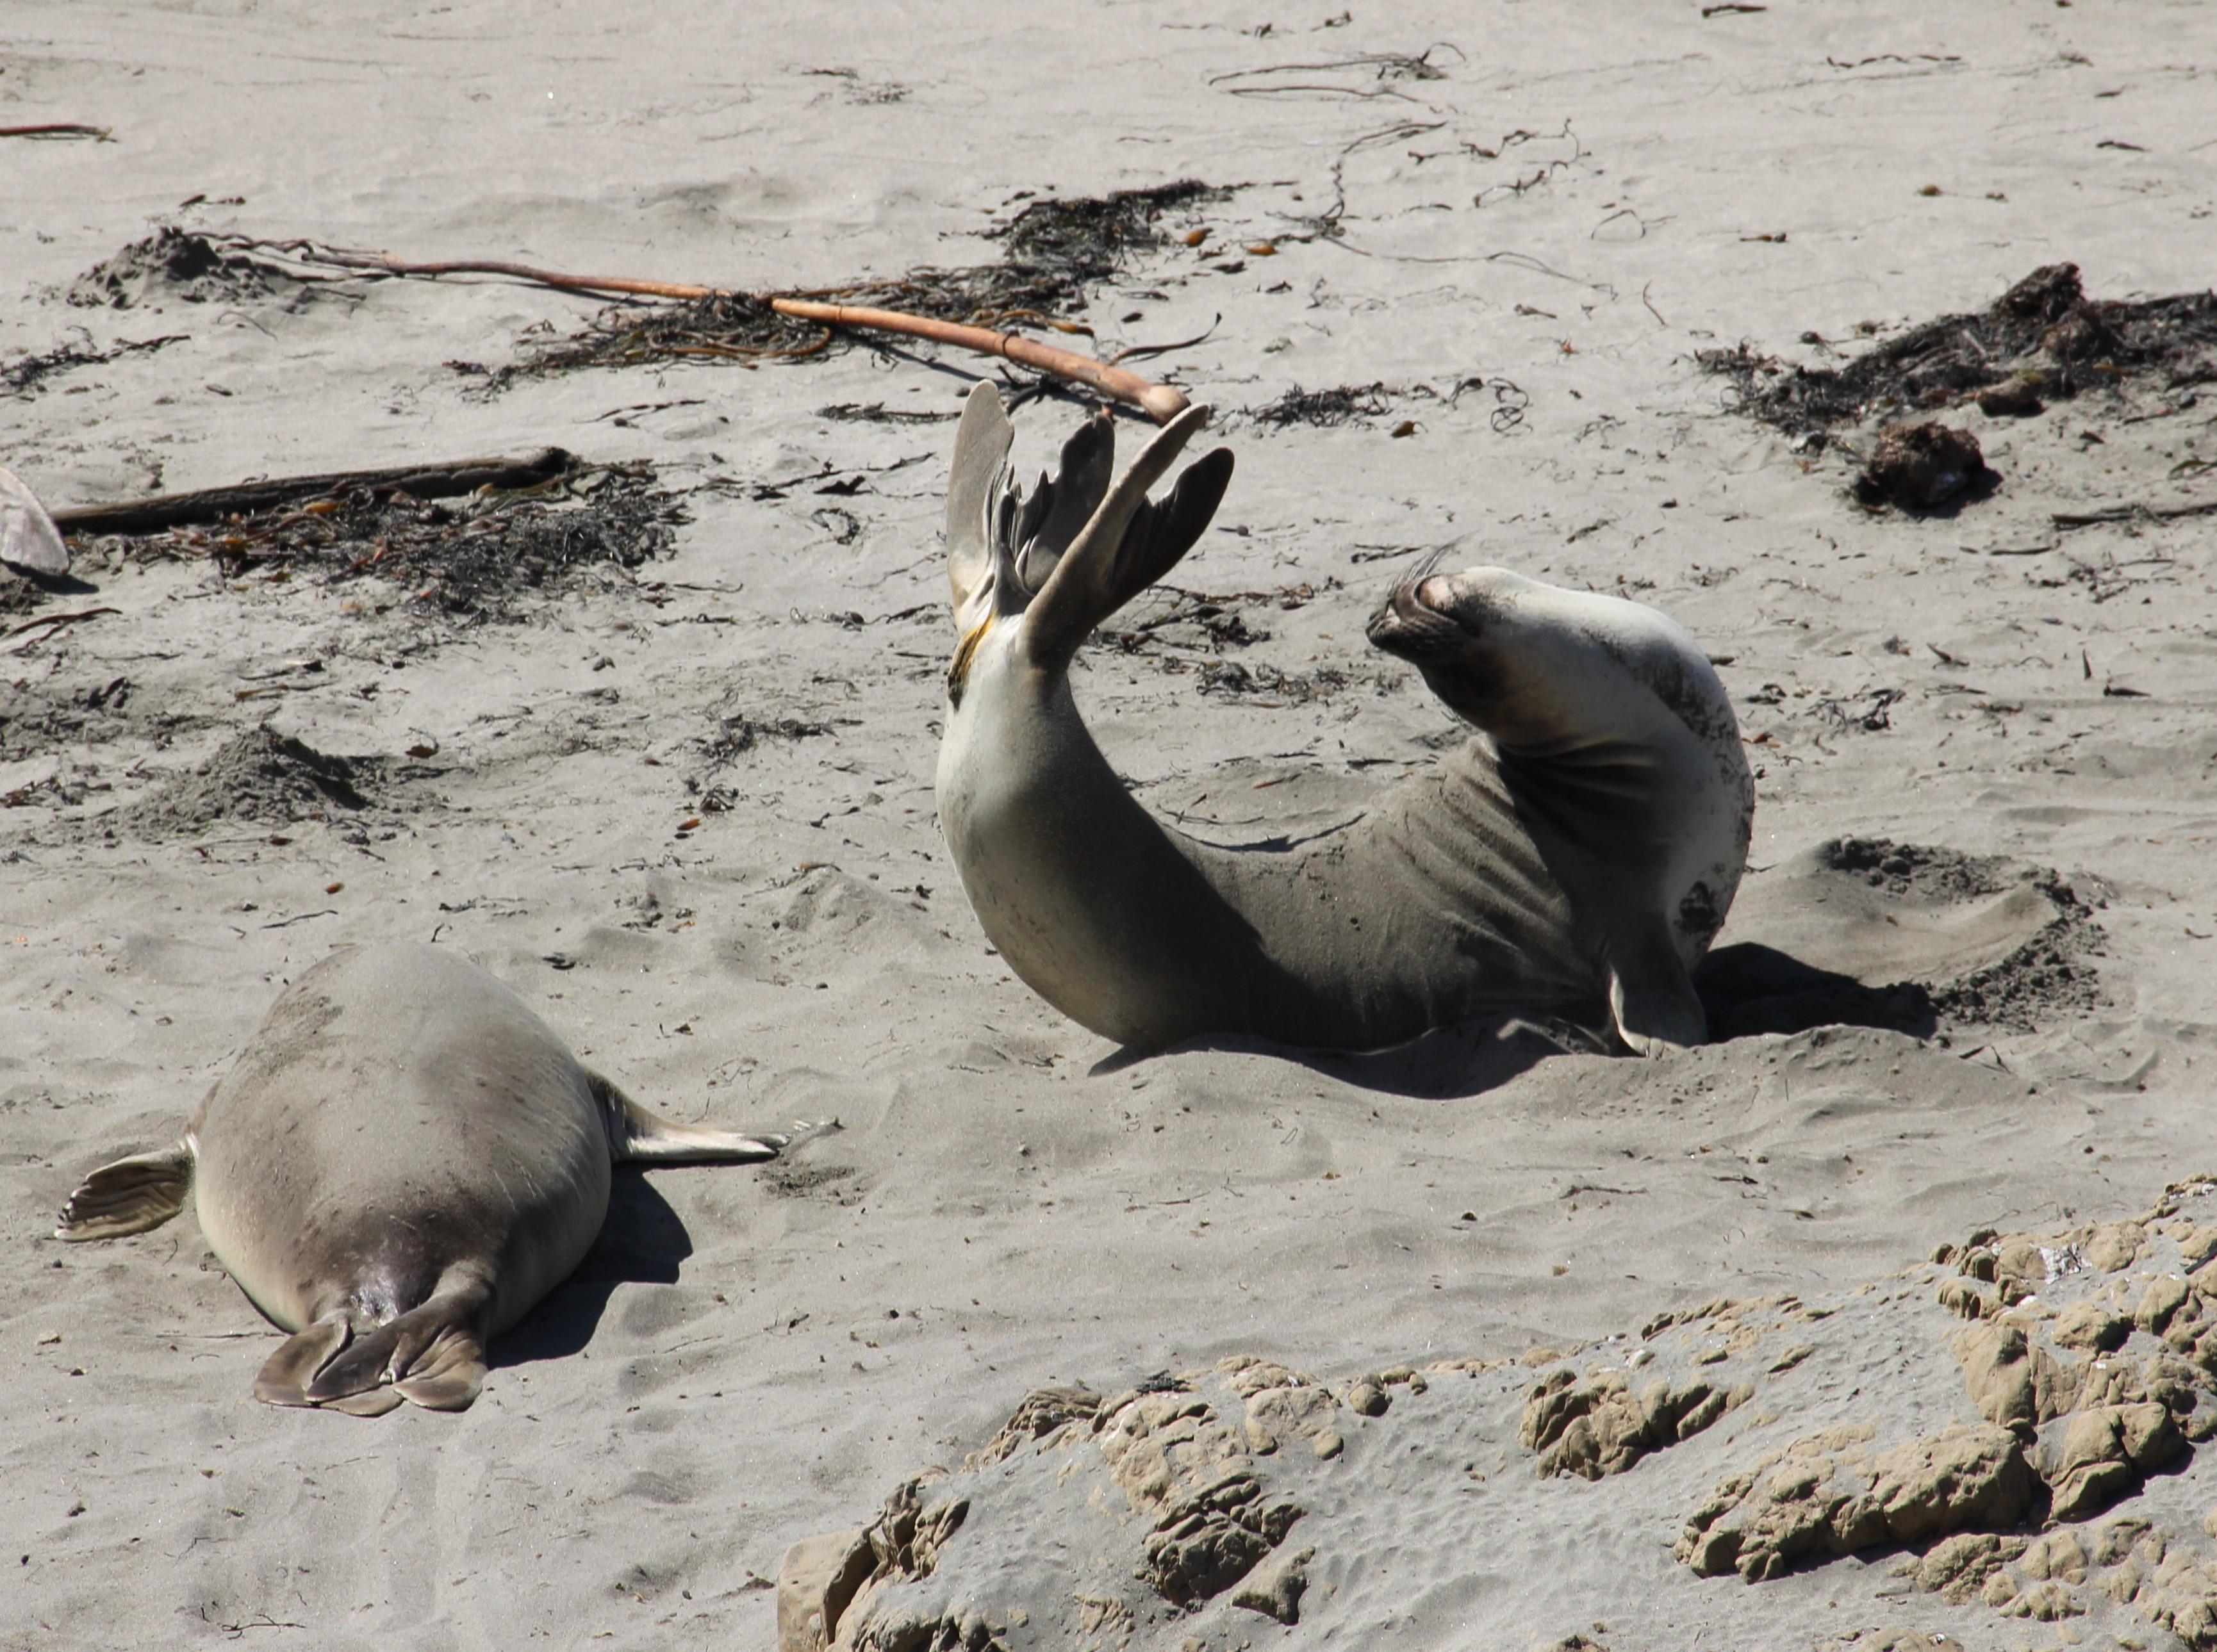 Seal Yoga at Elephant Seal Rookery